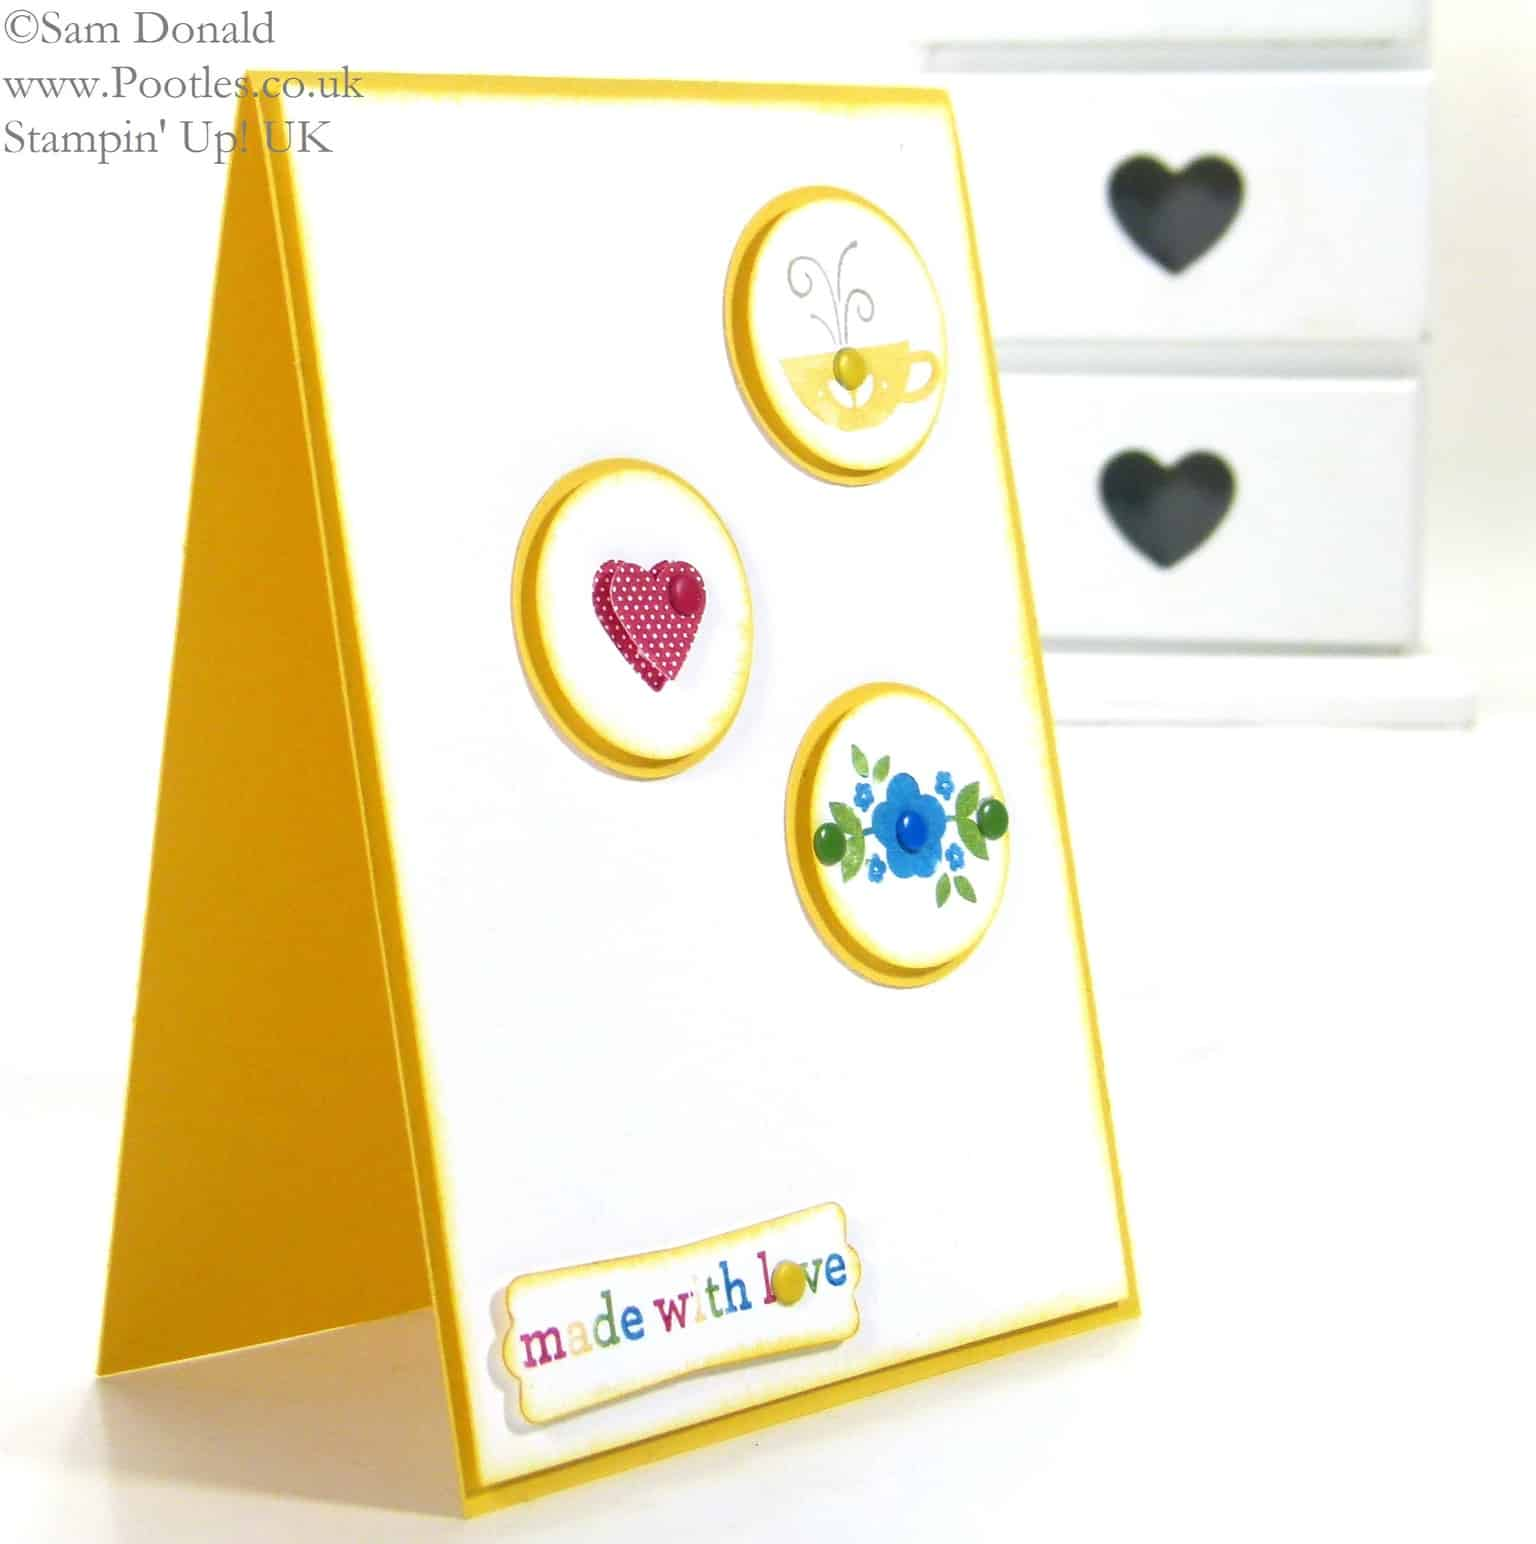 POOTLES Stampin' Up! UK Kind & Cosy is Made with Love